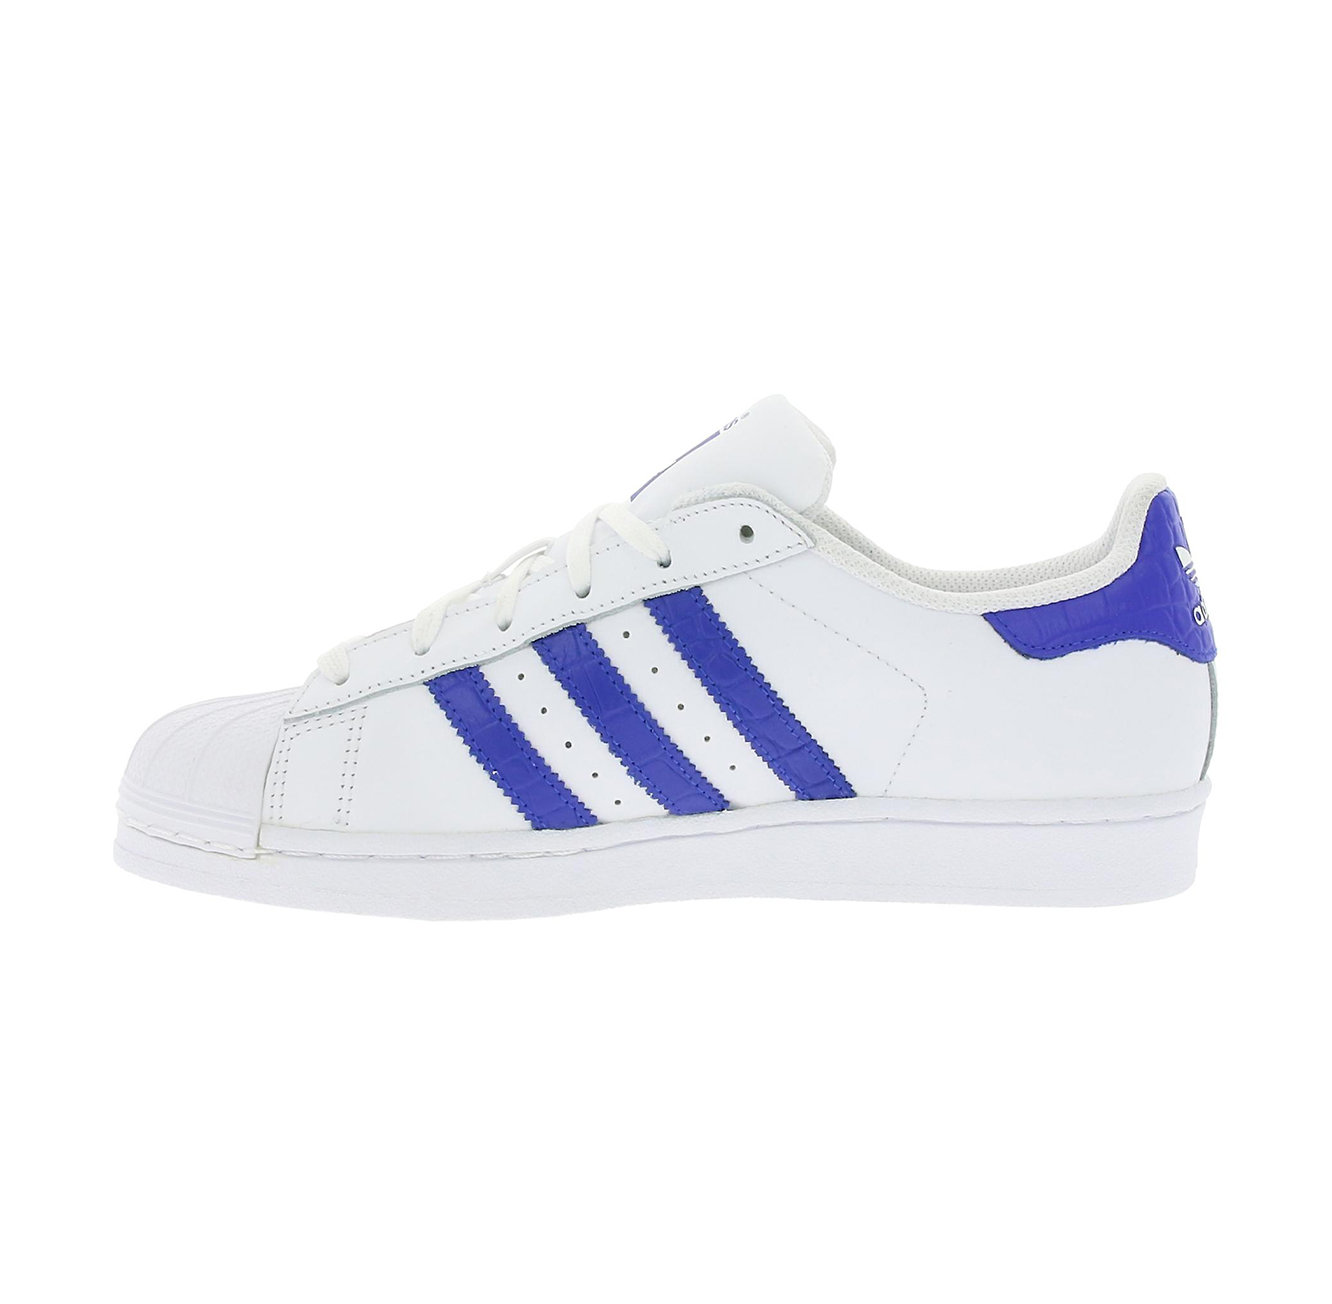 נעליים יוניסקס ADIDAS SUPERSTAR BZ0363 - לבן/כחול